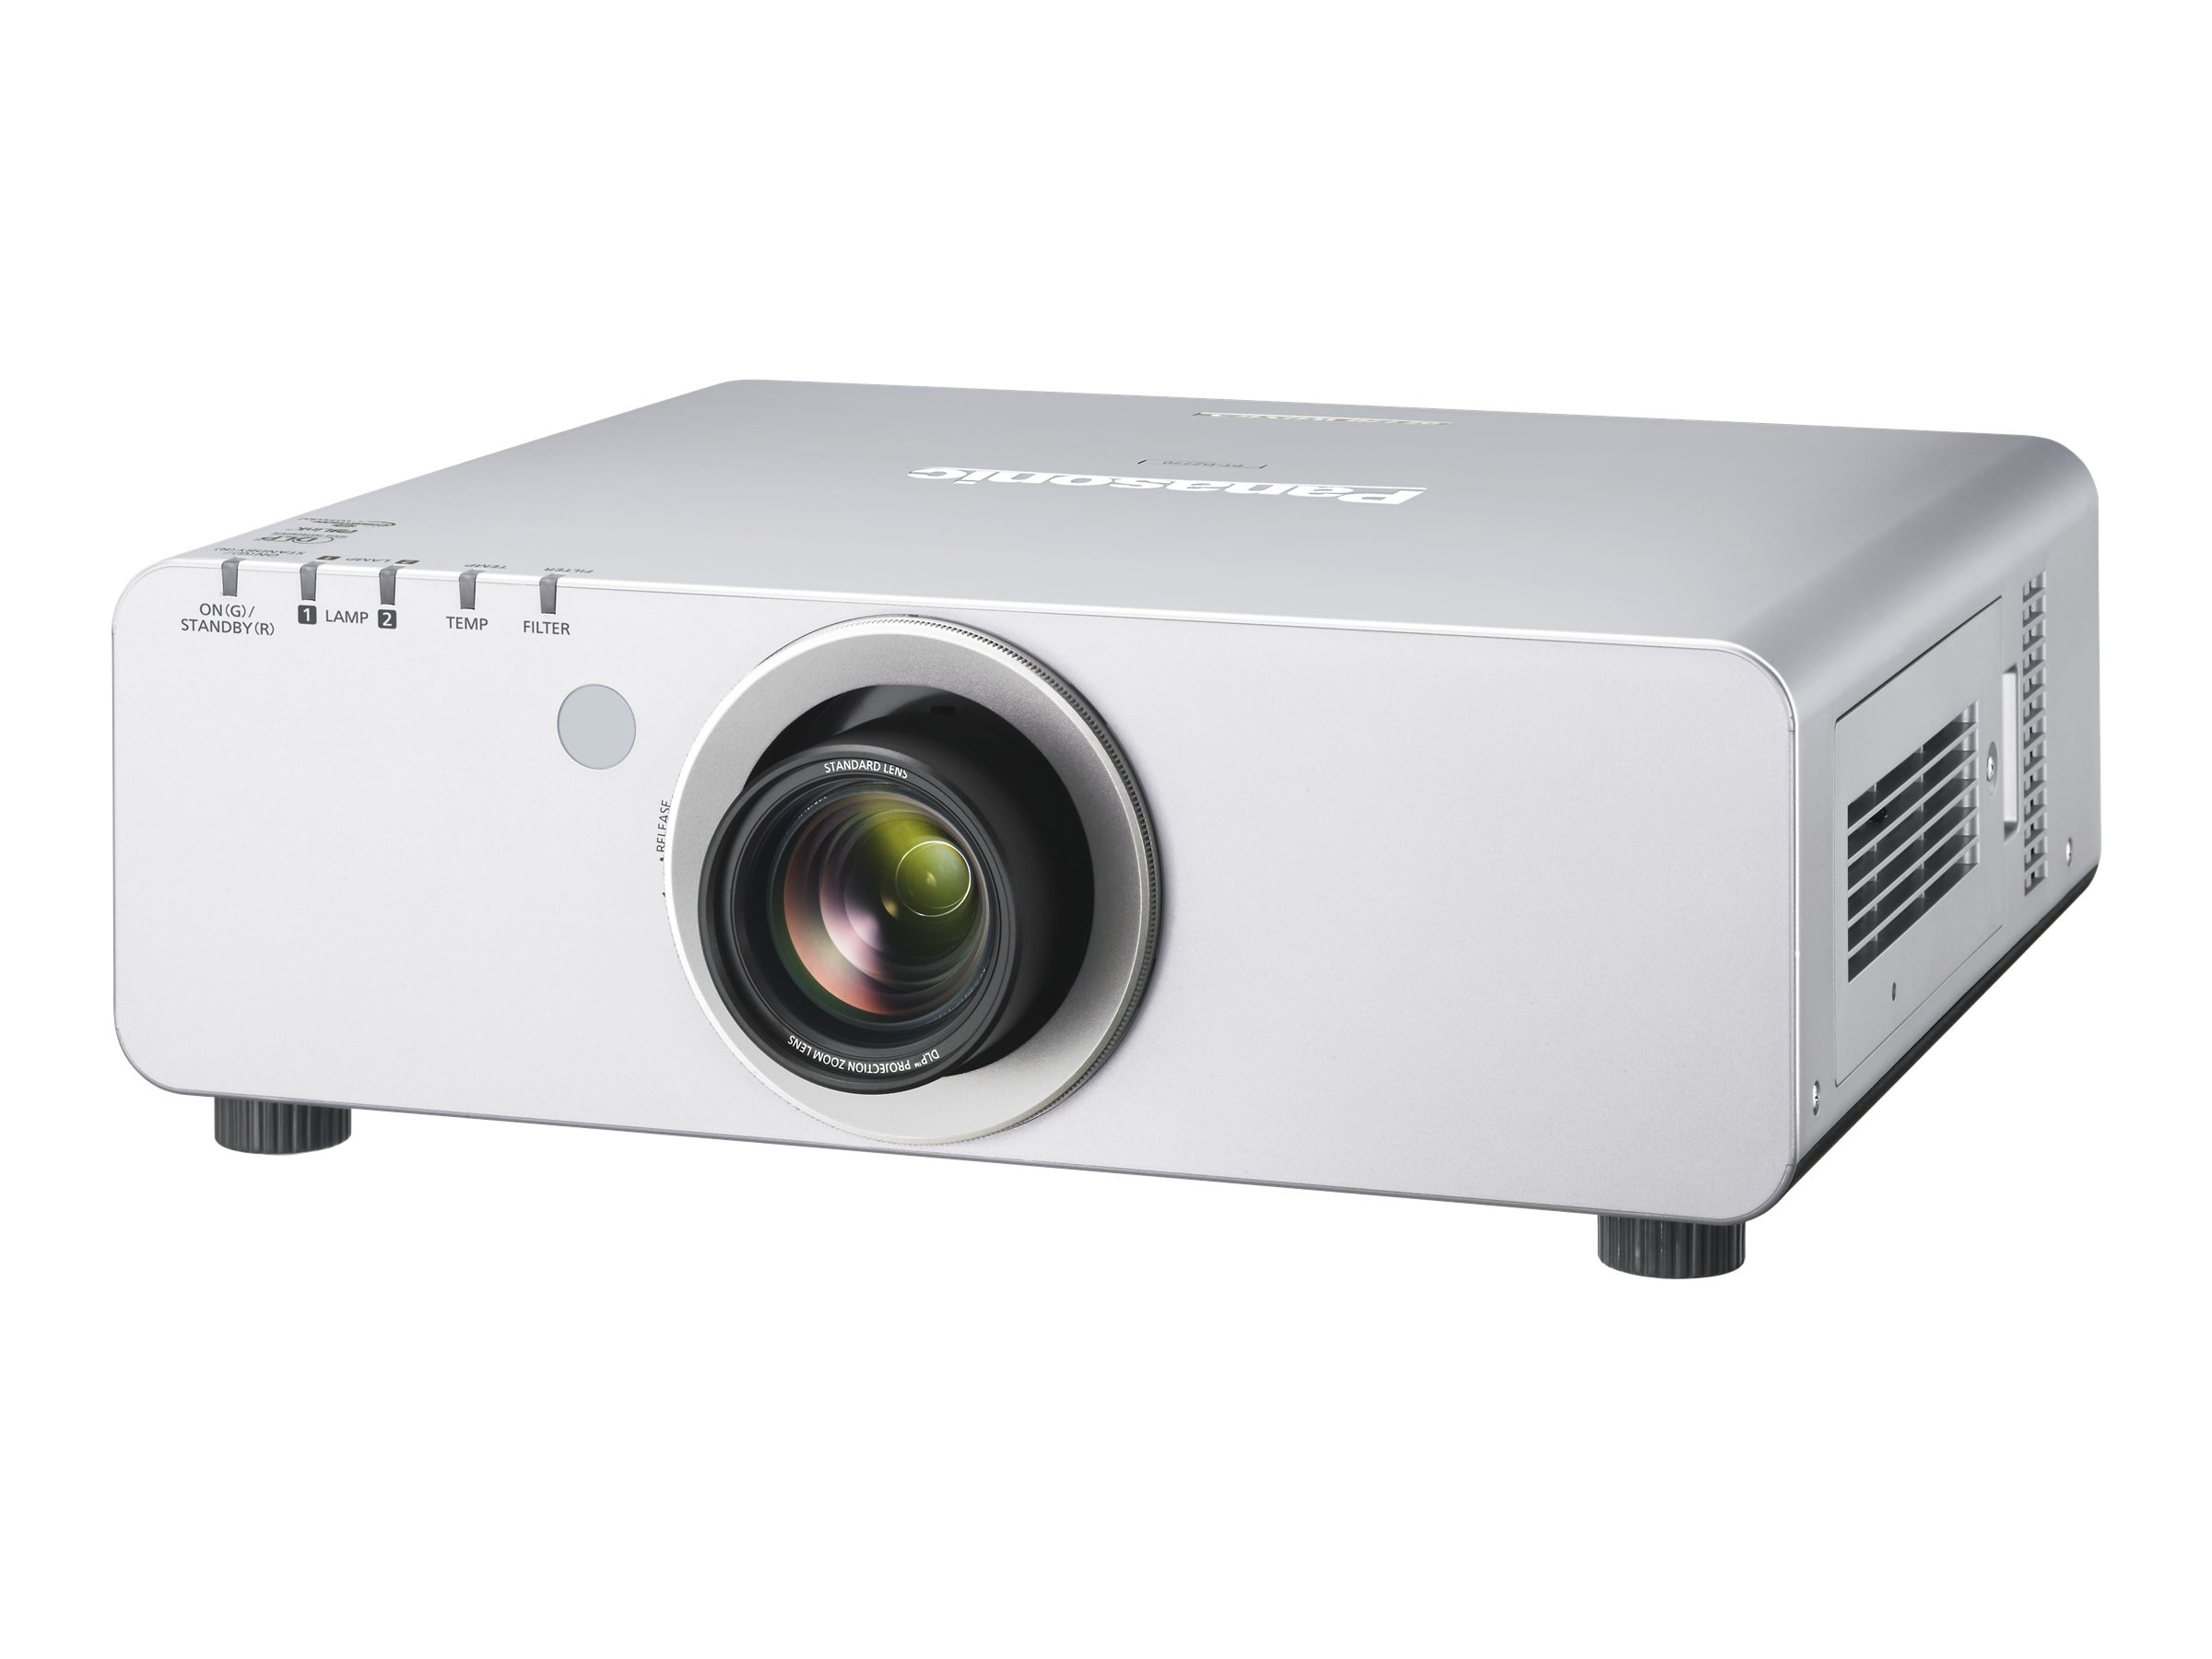 Panasonic PT-DZ770US Full HD DLP Projector, 7000 Lumens, PTDZ770US